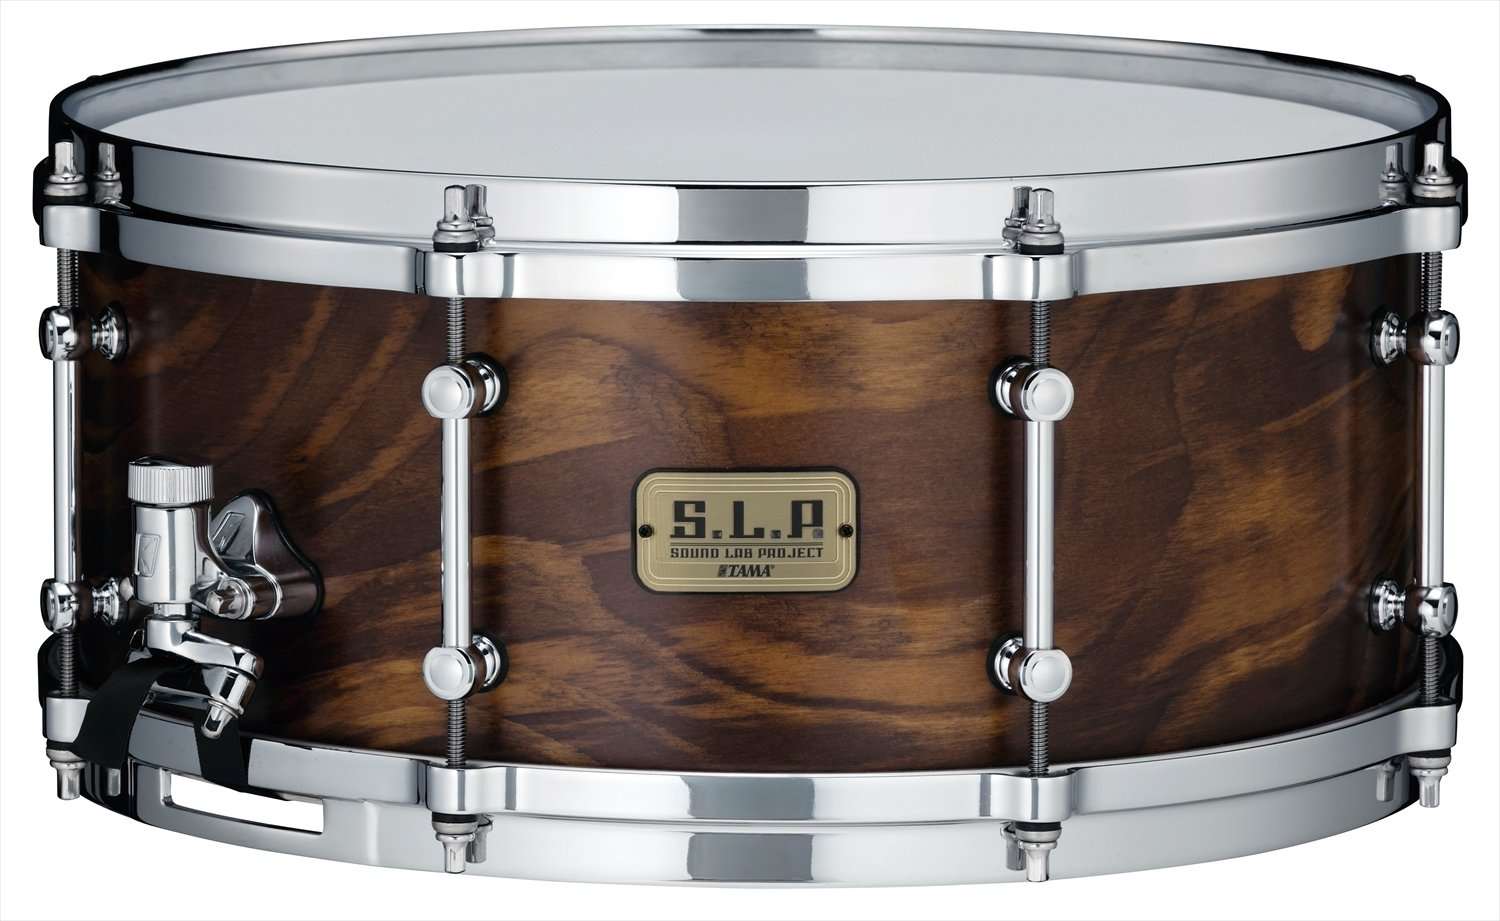 Tama S.L.P. Fat Spruce Snare Drum 14 x 6 in.